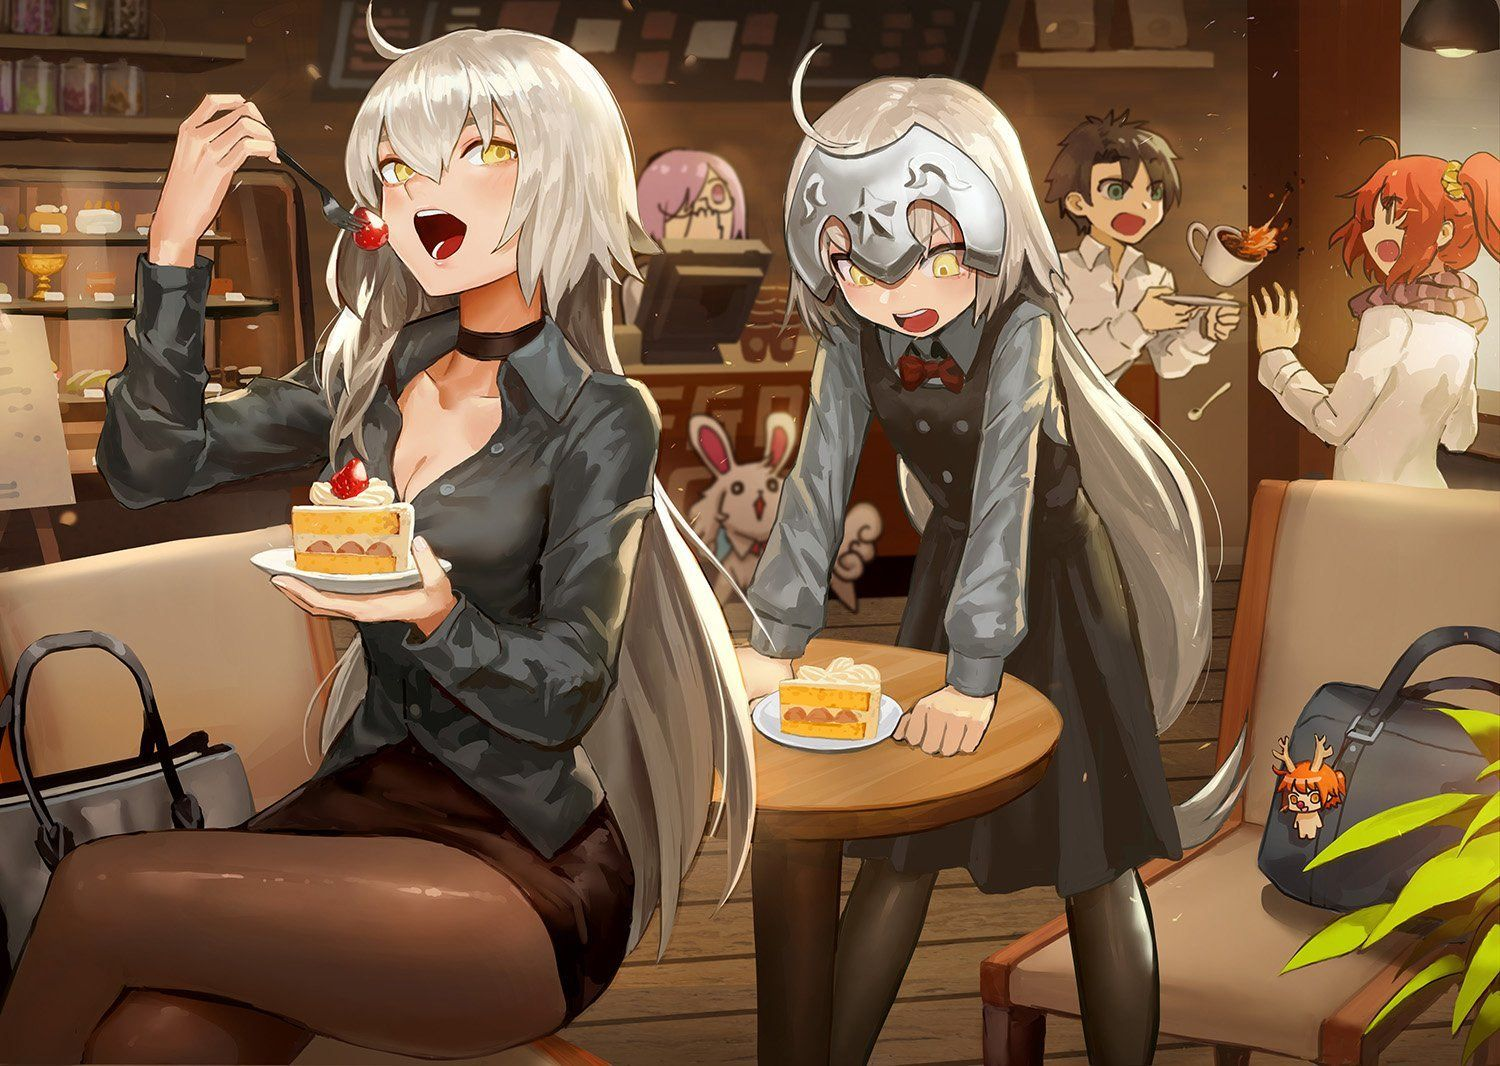 Jalter & Lily at the Party